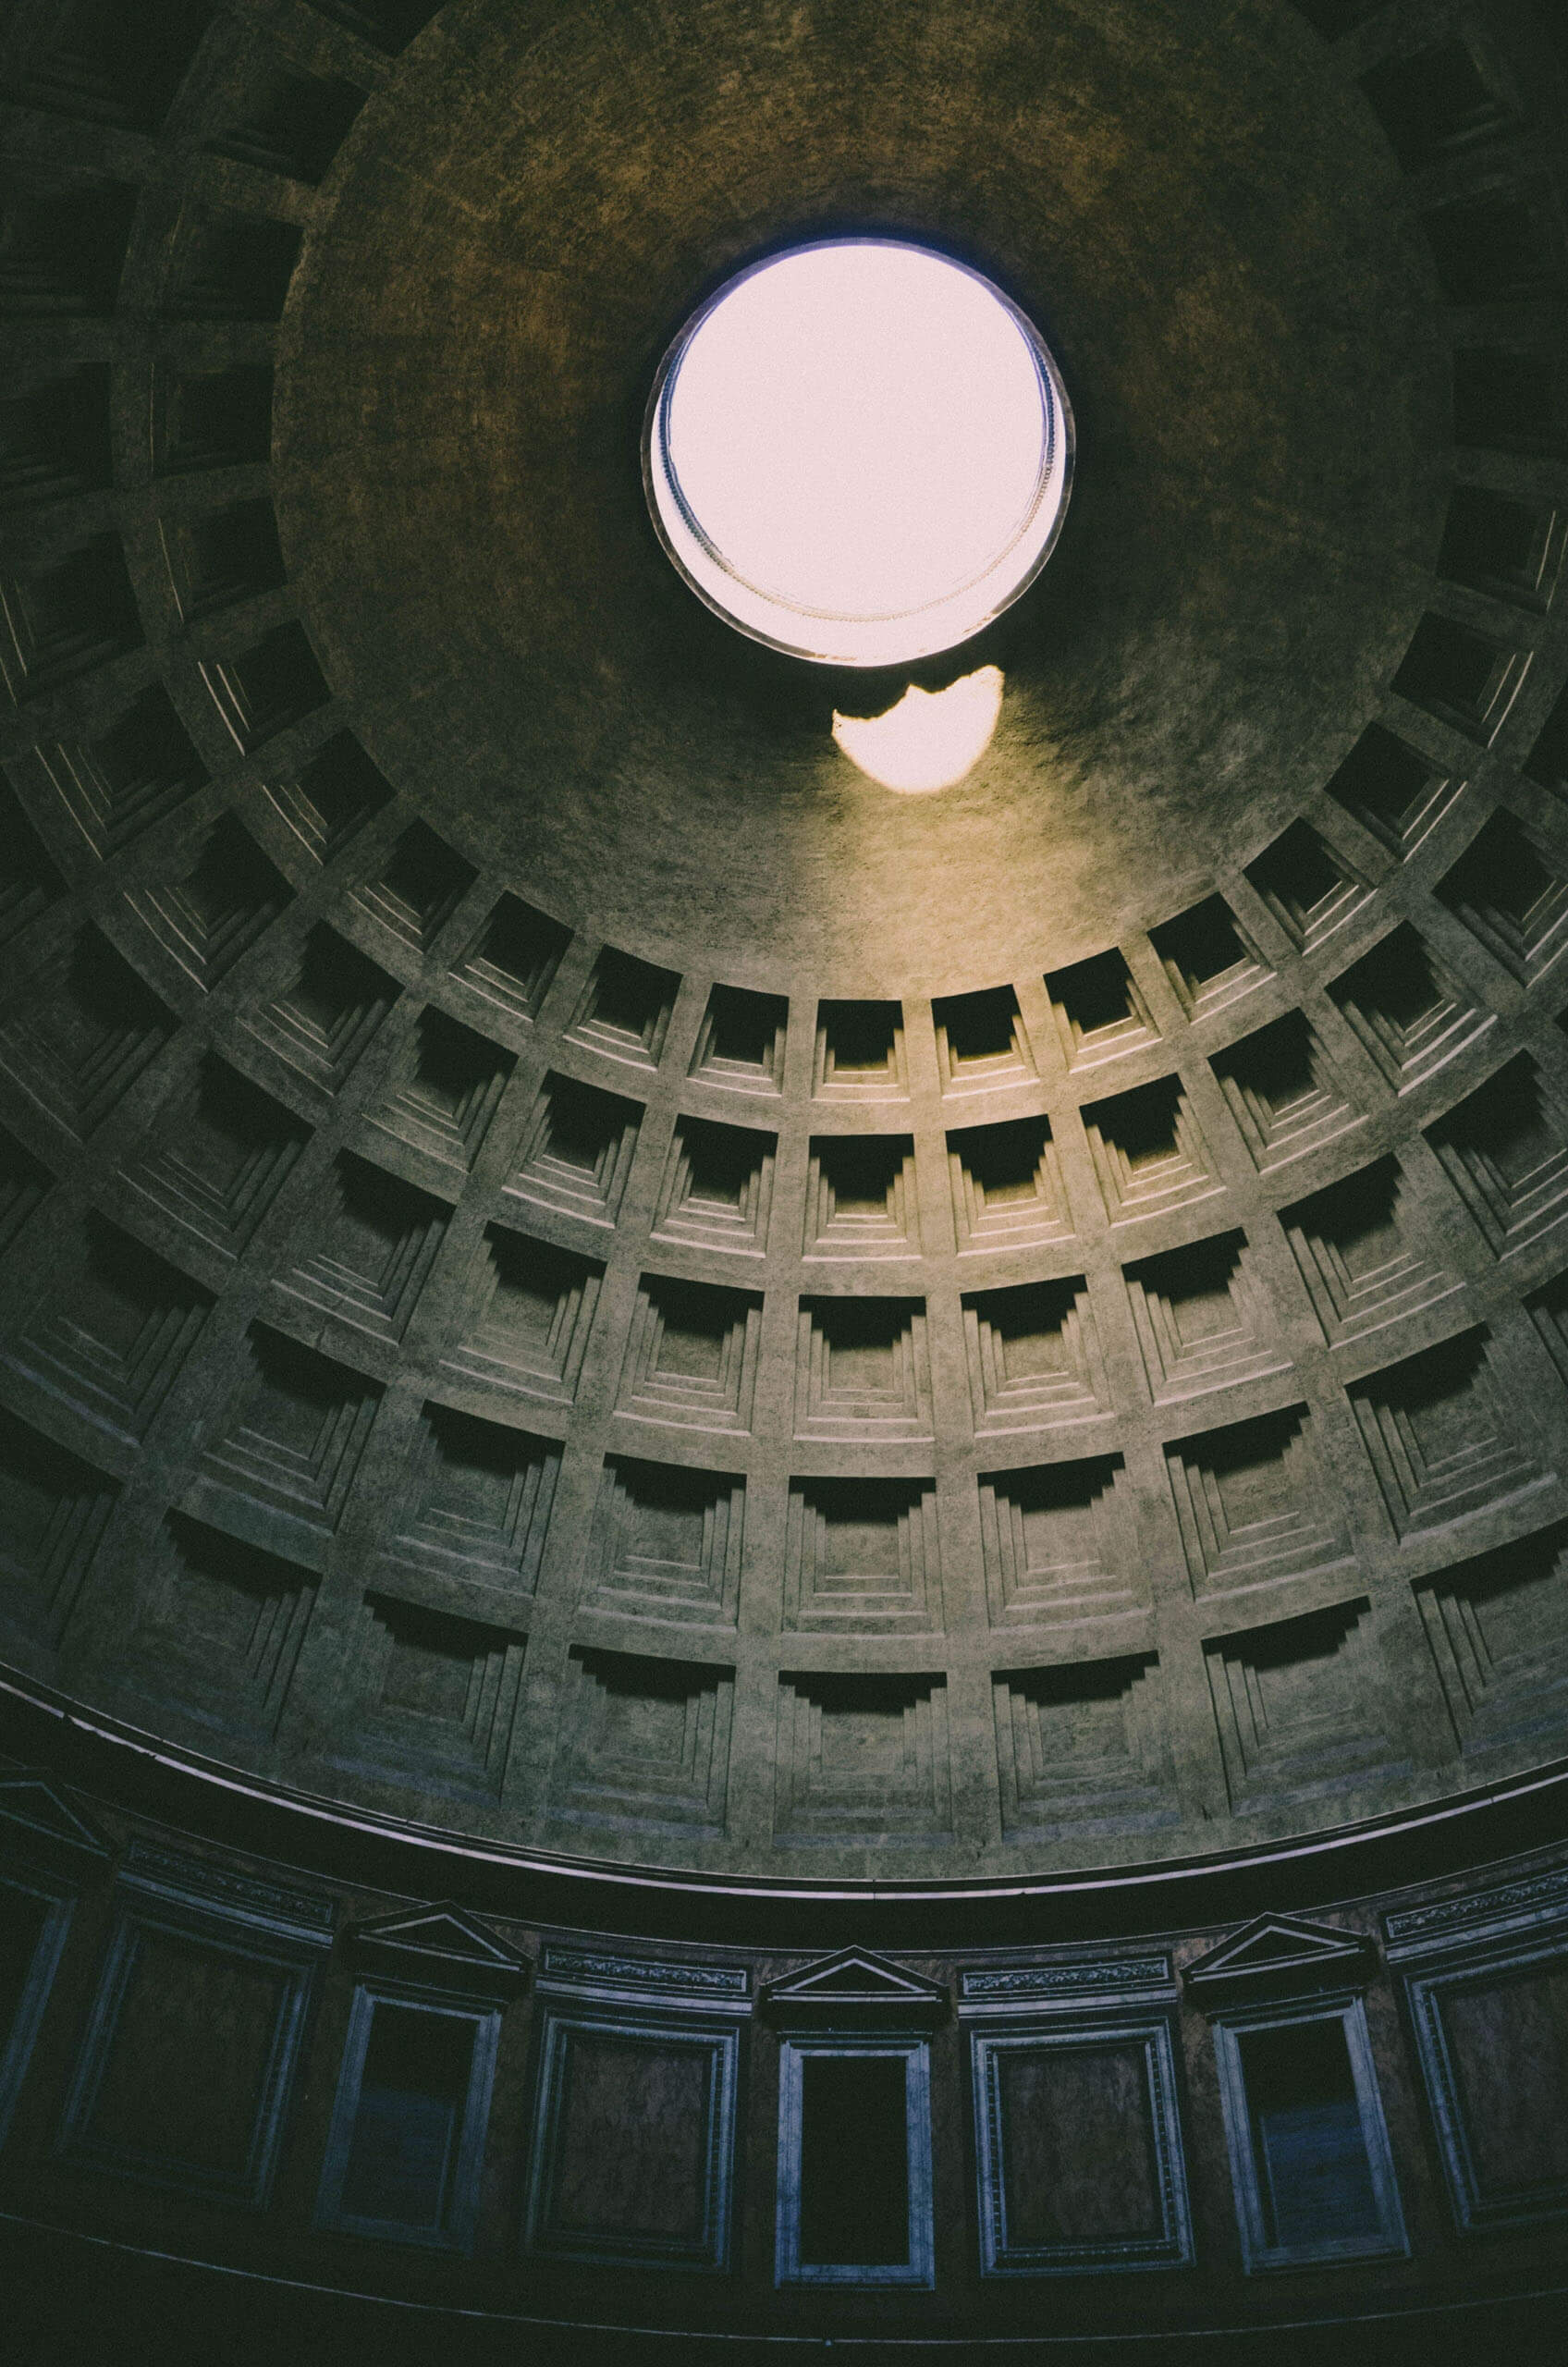 The ceiling of the Pantheon. Photo by Lode Lagrainge on Unsplash